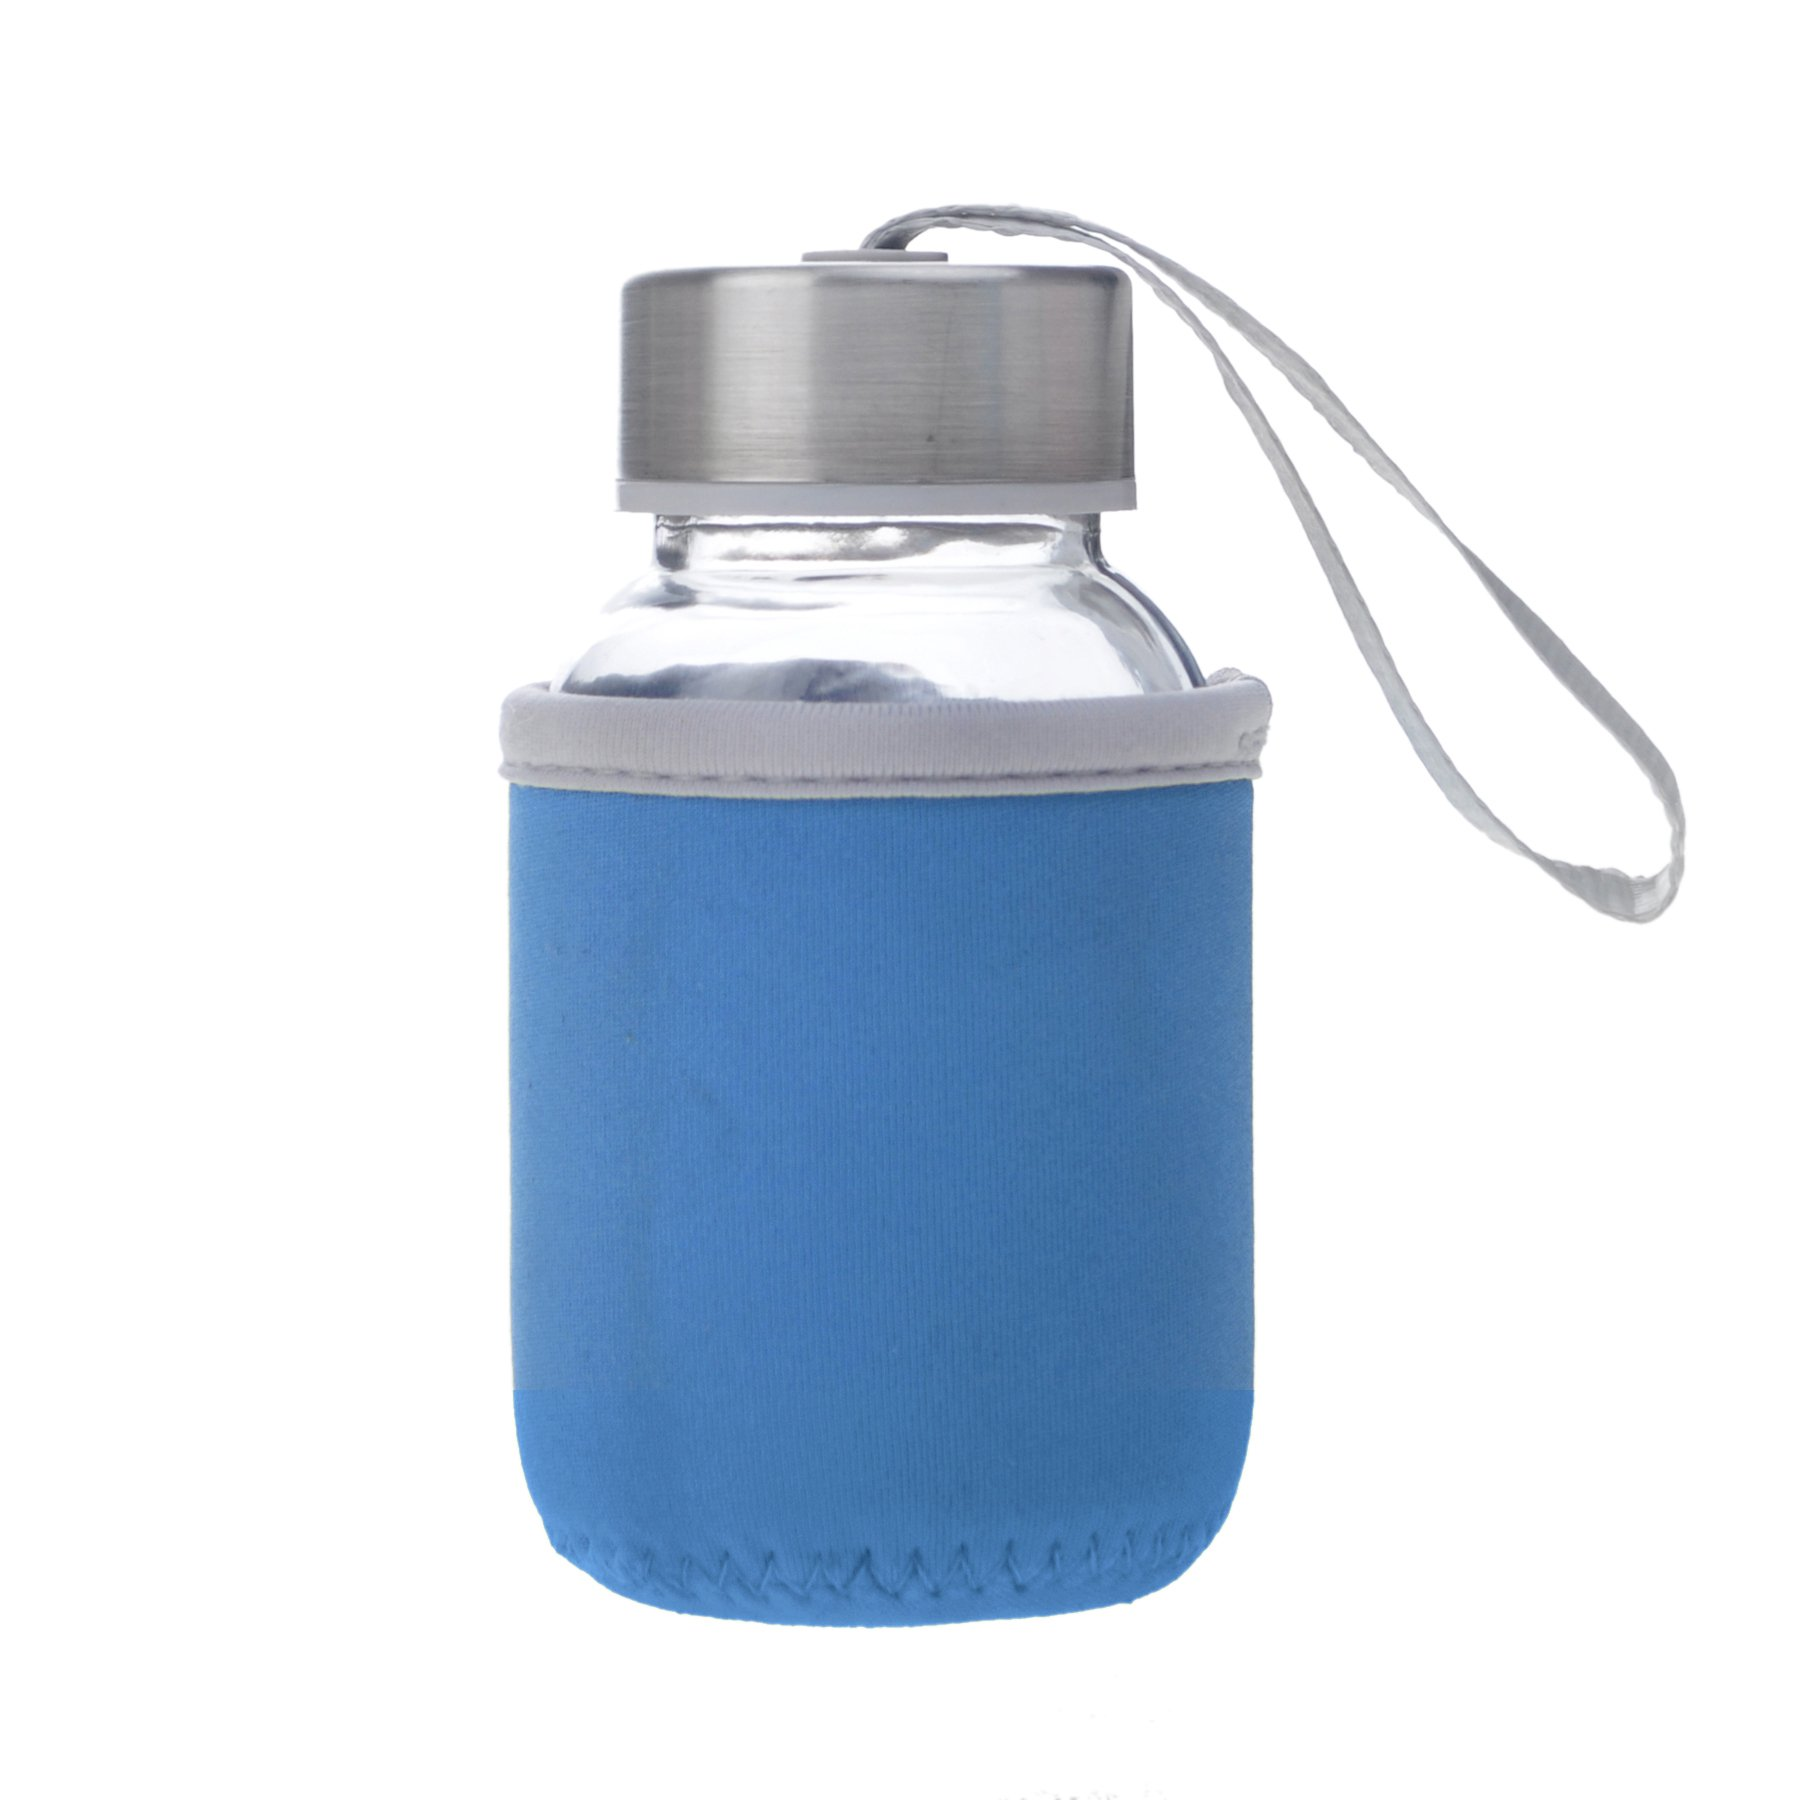 Aspire 5oz Premium Glass Water Bottle with Insulated Sleeve, Stainless Steel Caps with Carrying Loop, Wide Mouth Leakproof Drink Bottles, for Kids-Blue